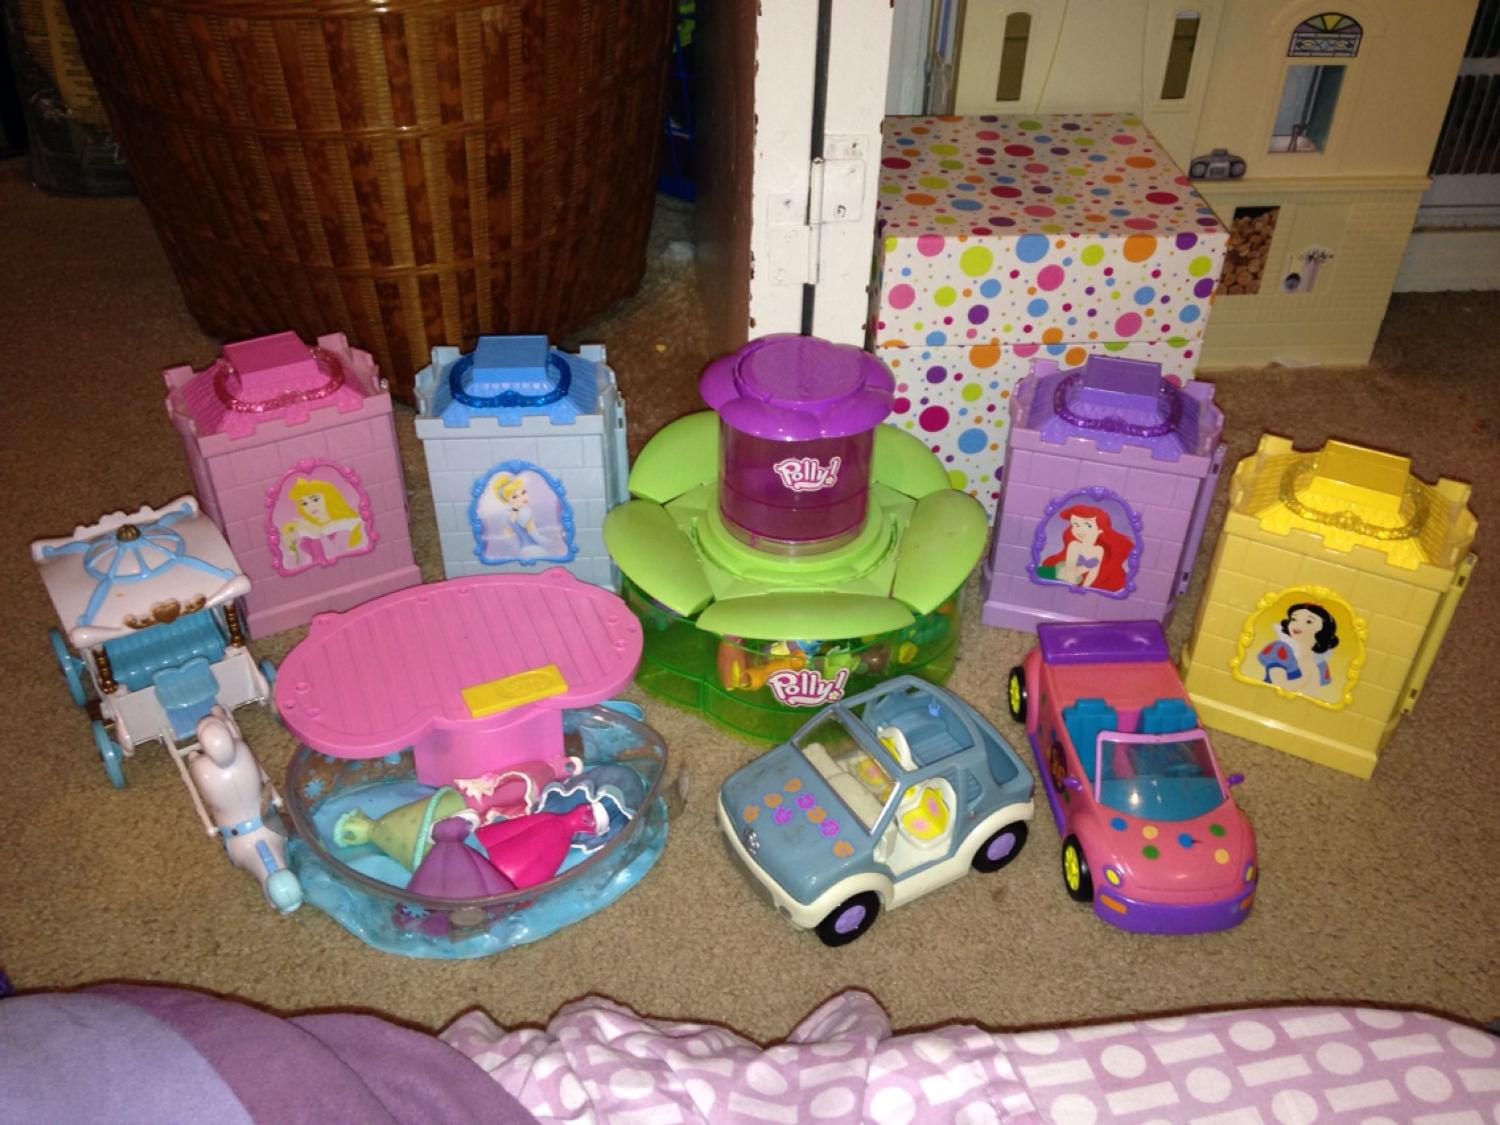 Giant Polly pocket Disney princess sets Reduced Price $45 (not half off)